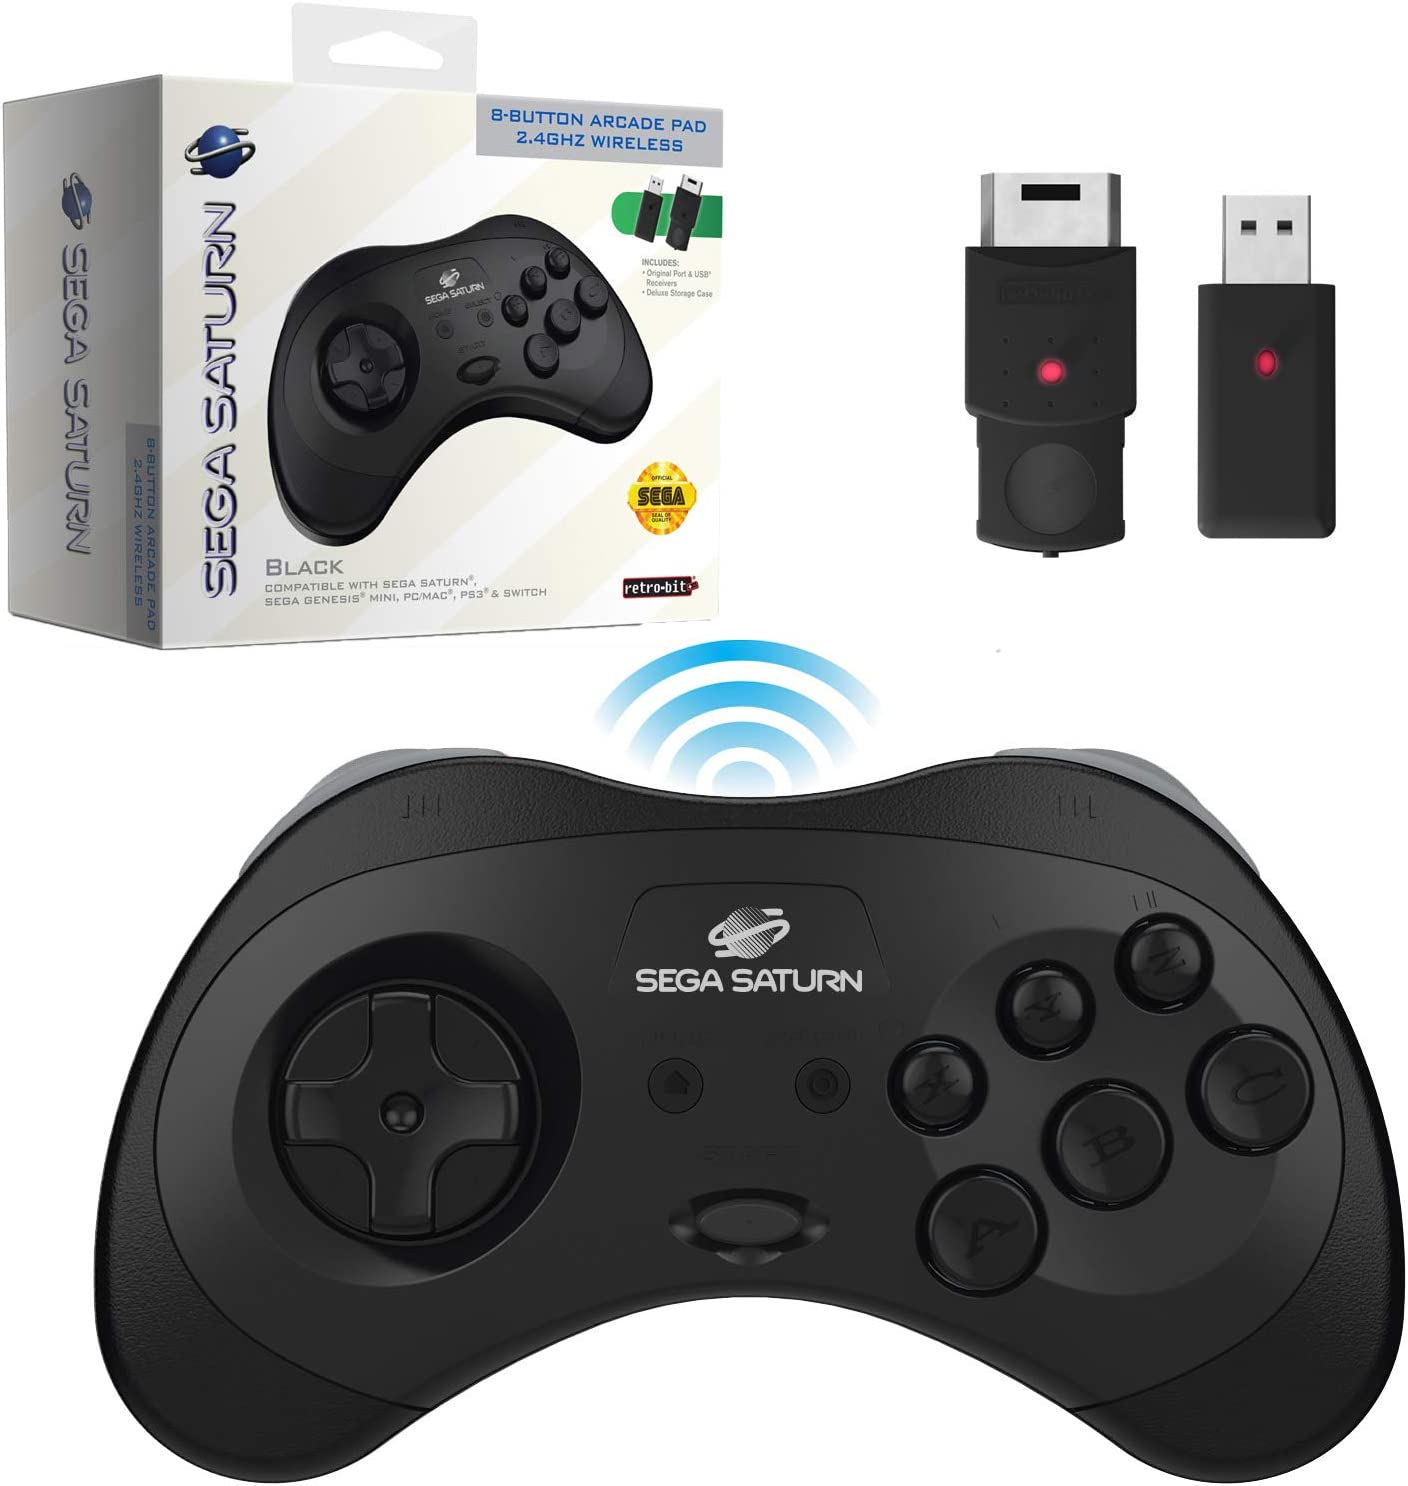 Retro-Bit Official Sega Saturn 2.4 GHz Wireless Controller 8-Button Arcade Pad for Sega Saturn, Sega Genesis Mini, Switch, PS3, PC, Mac - Includes 2 Receivers & Storage Case - Black